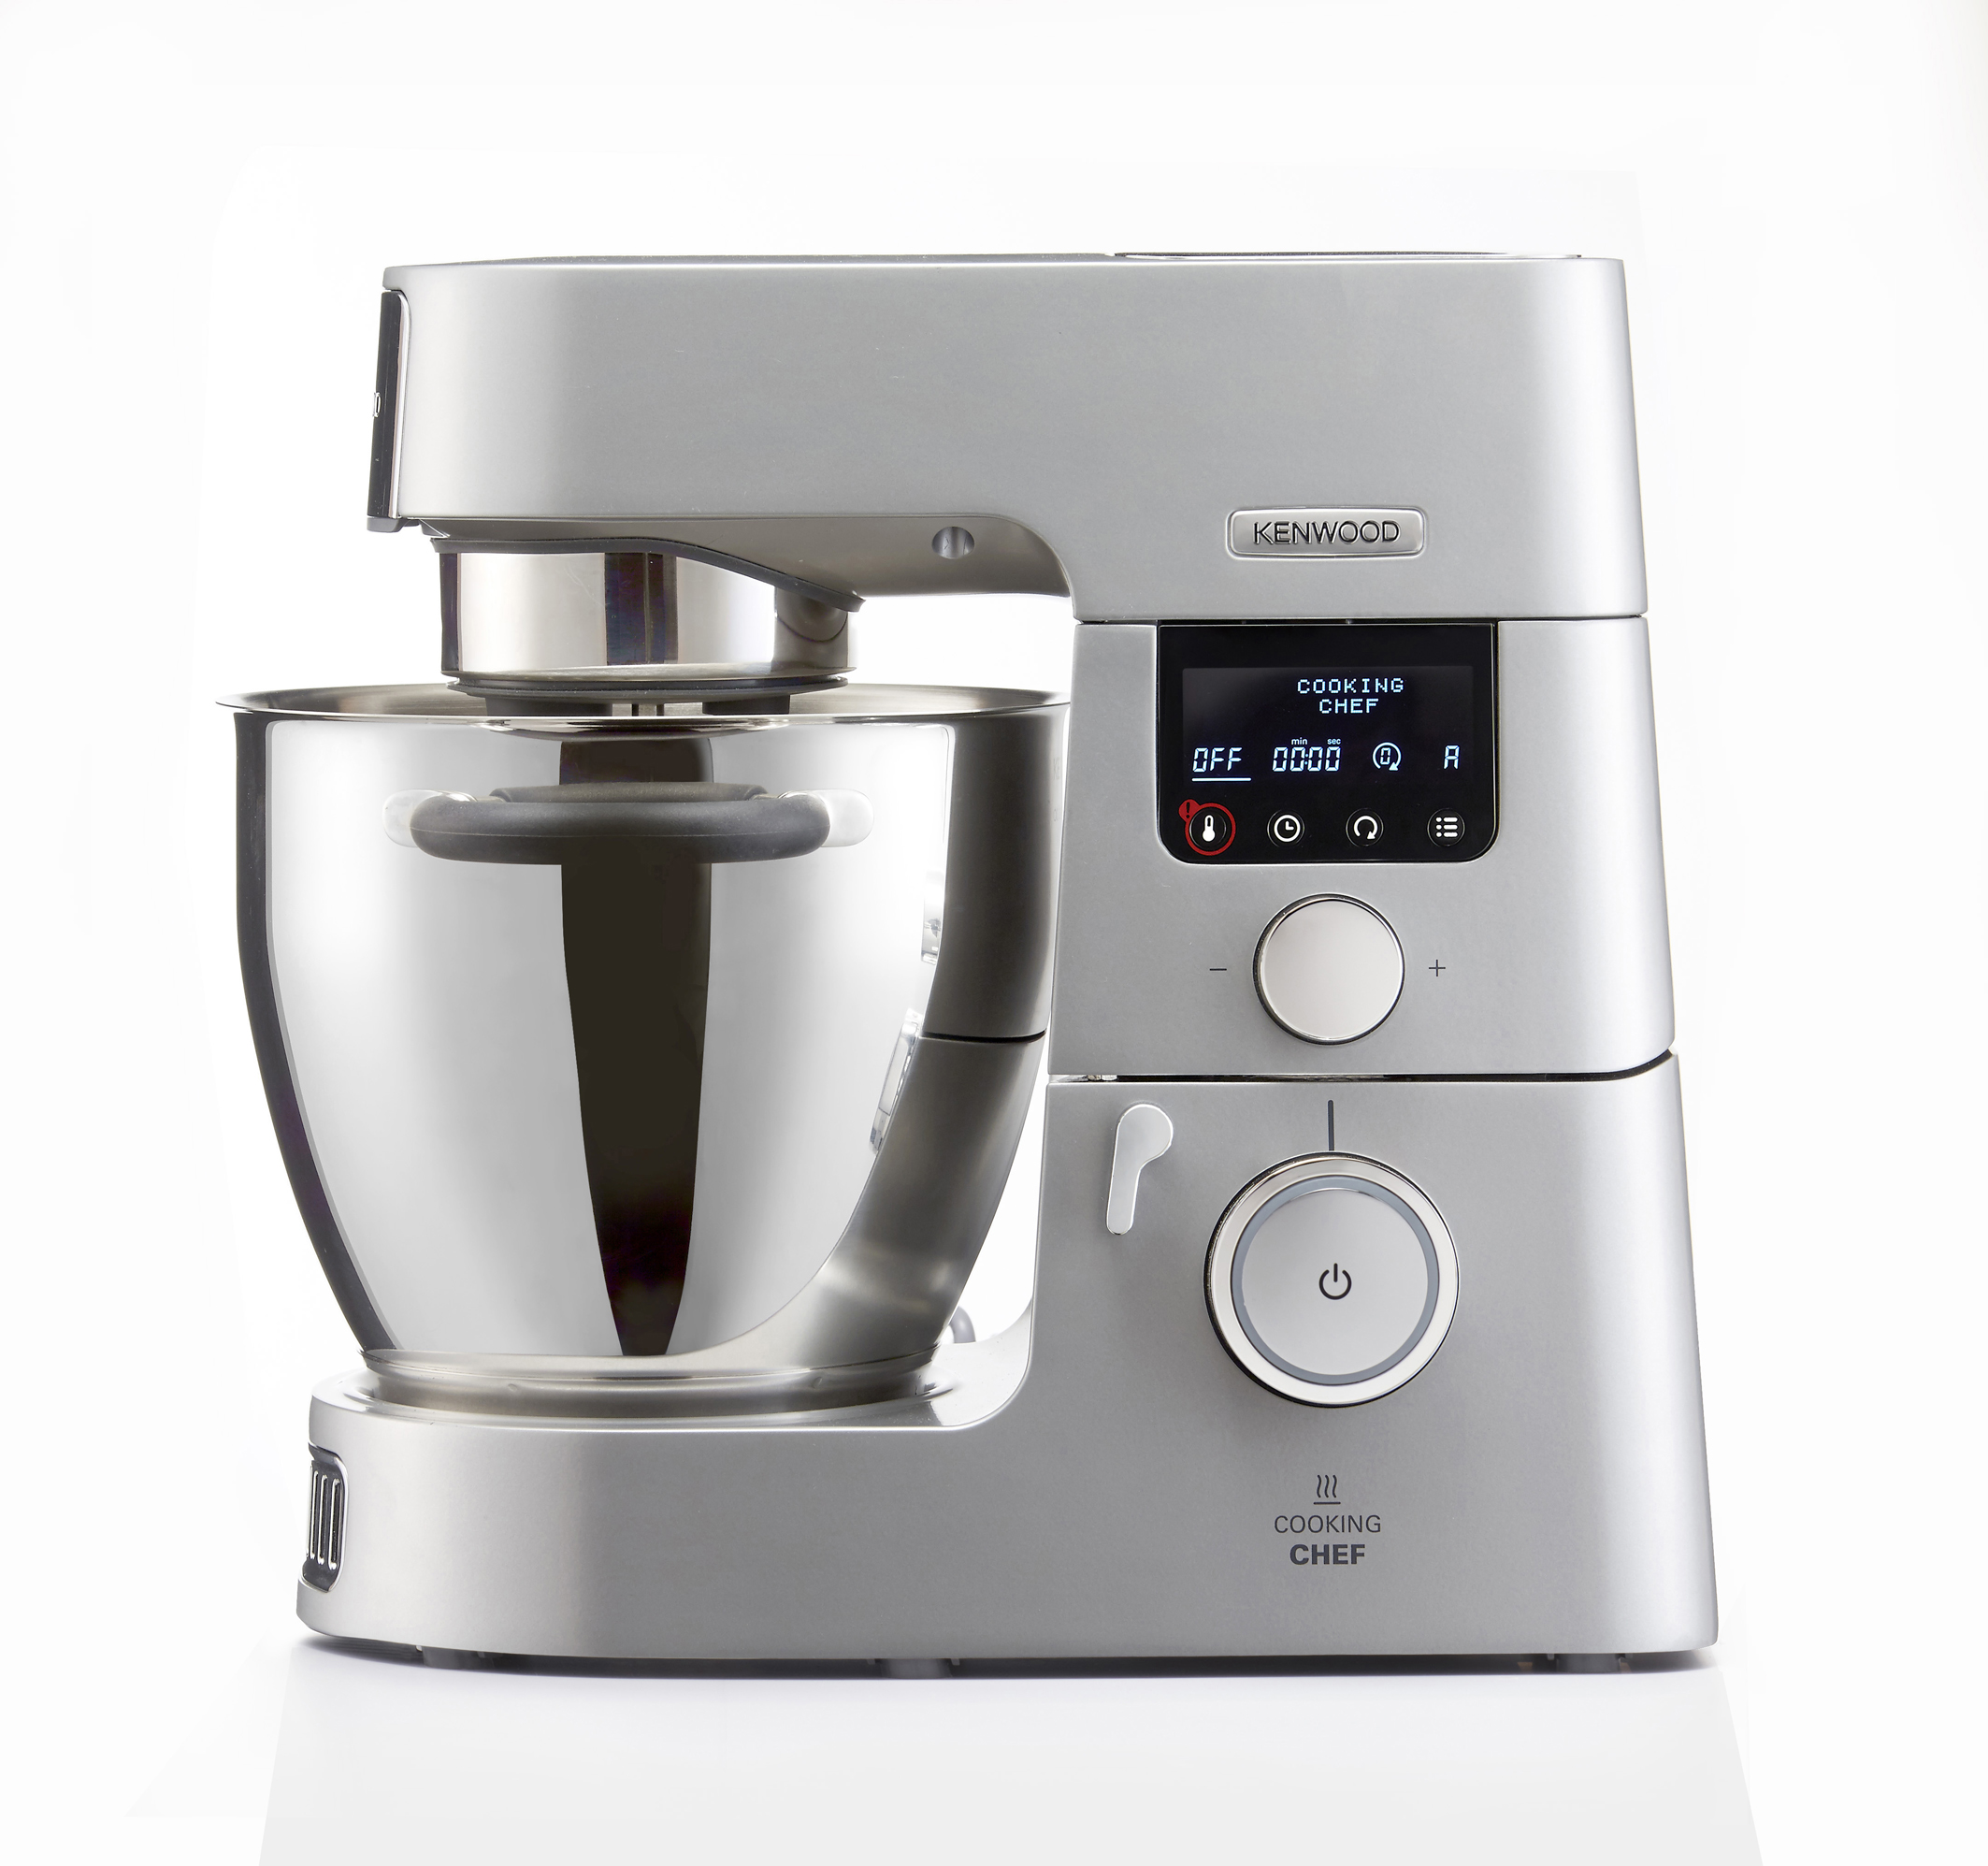 Kenwood Kuchenmaschine Kc09040s Cooking Chef Gourmet